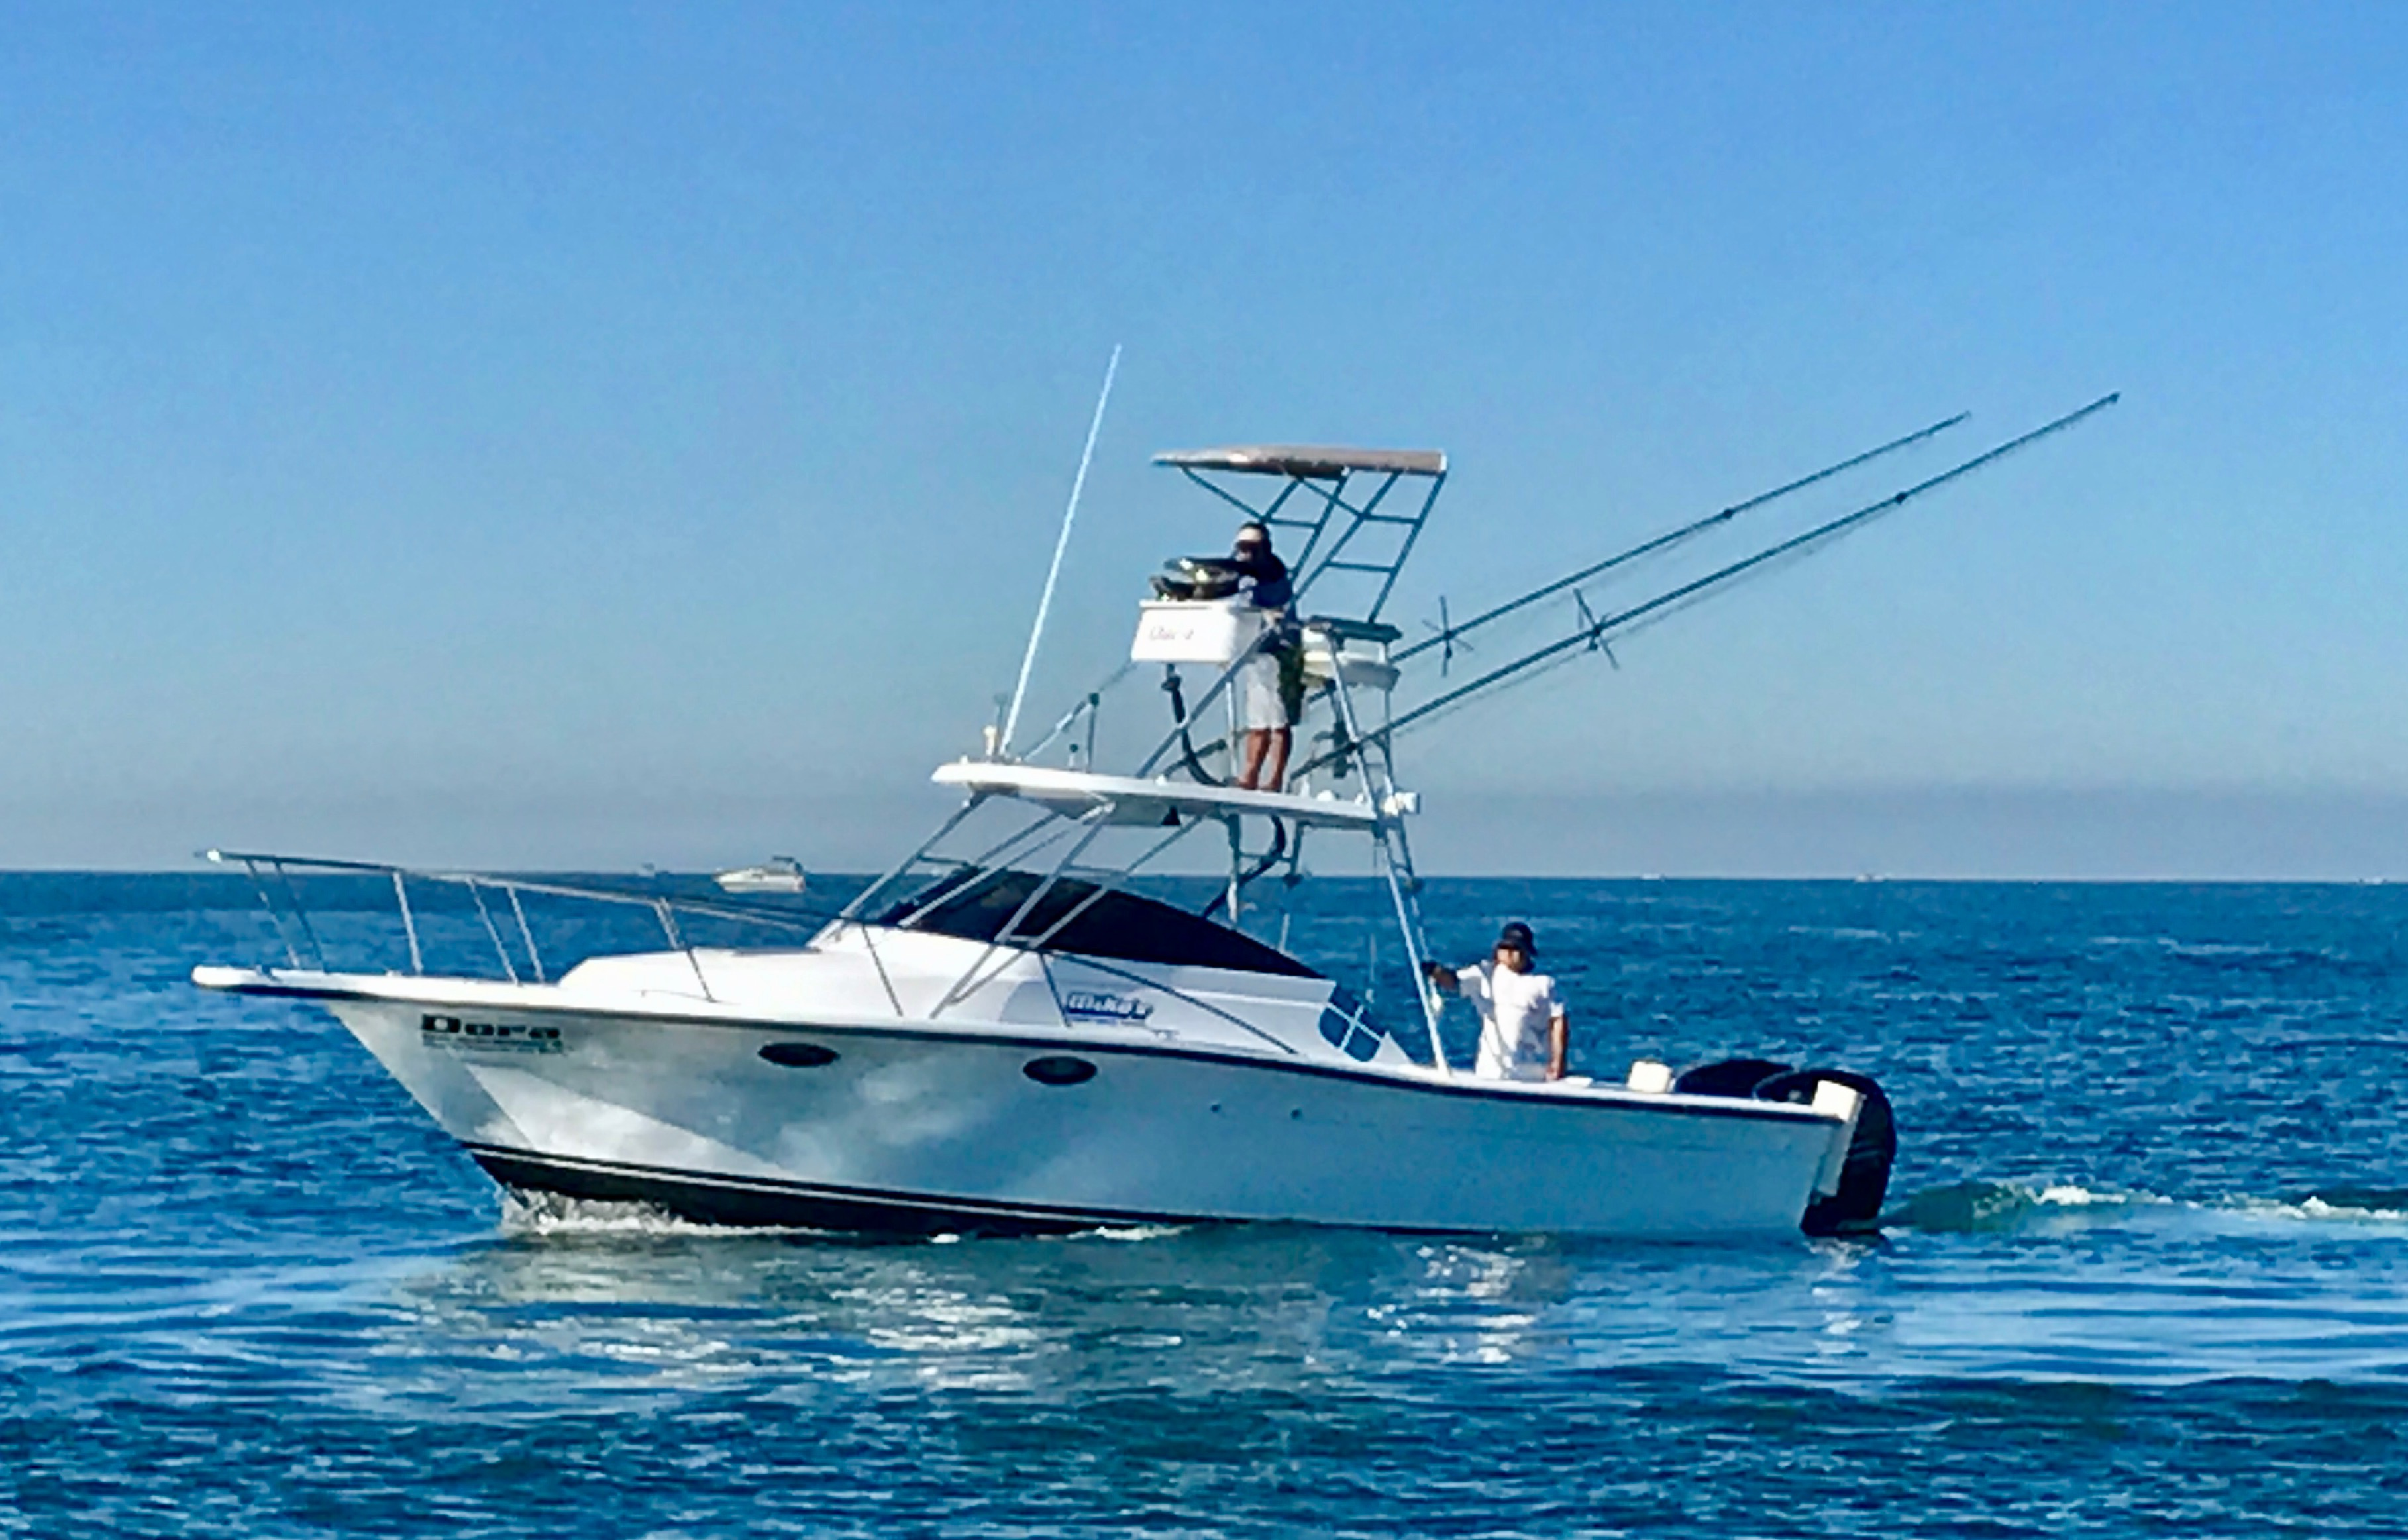 Dora, S2 Speed Fishing Boat - Mike's Charters & Tours